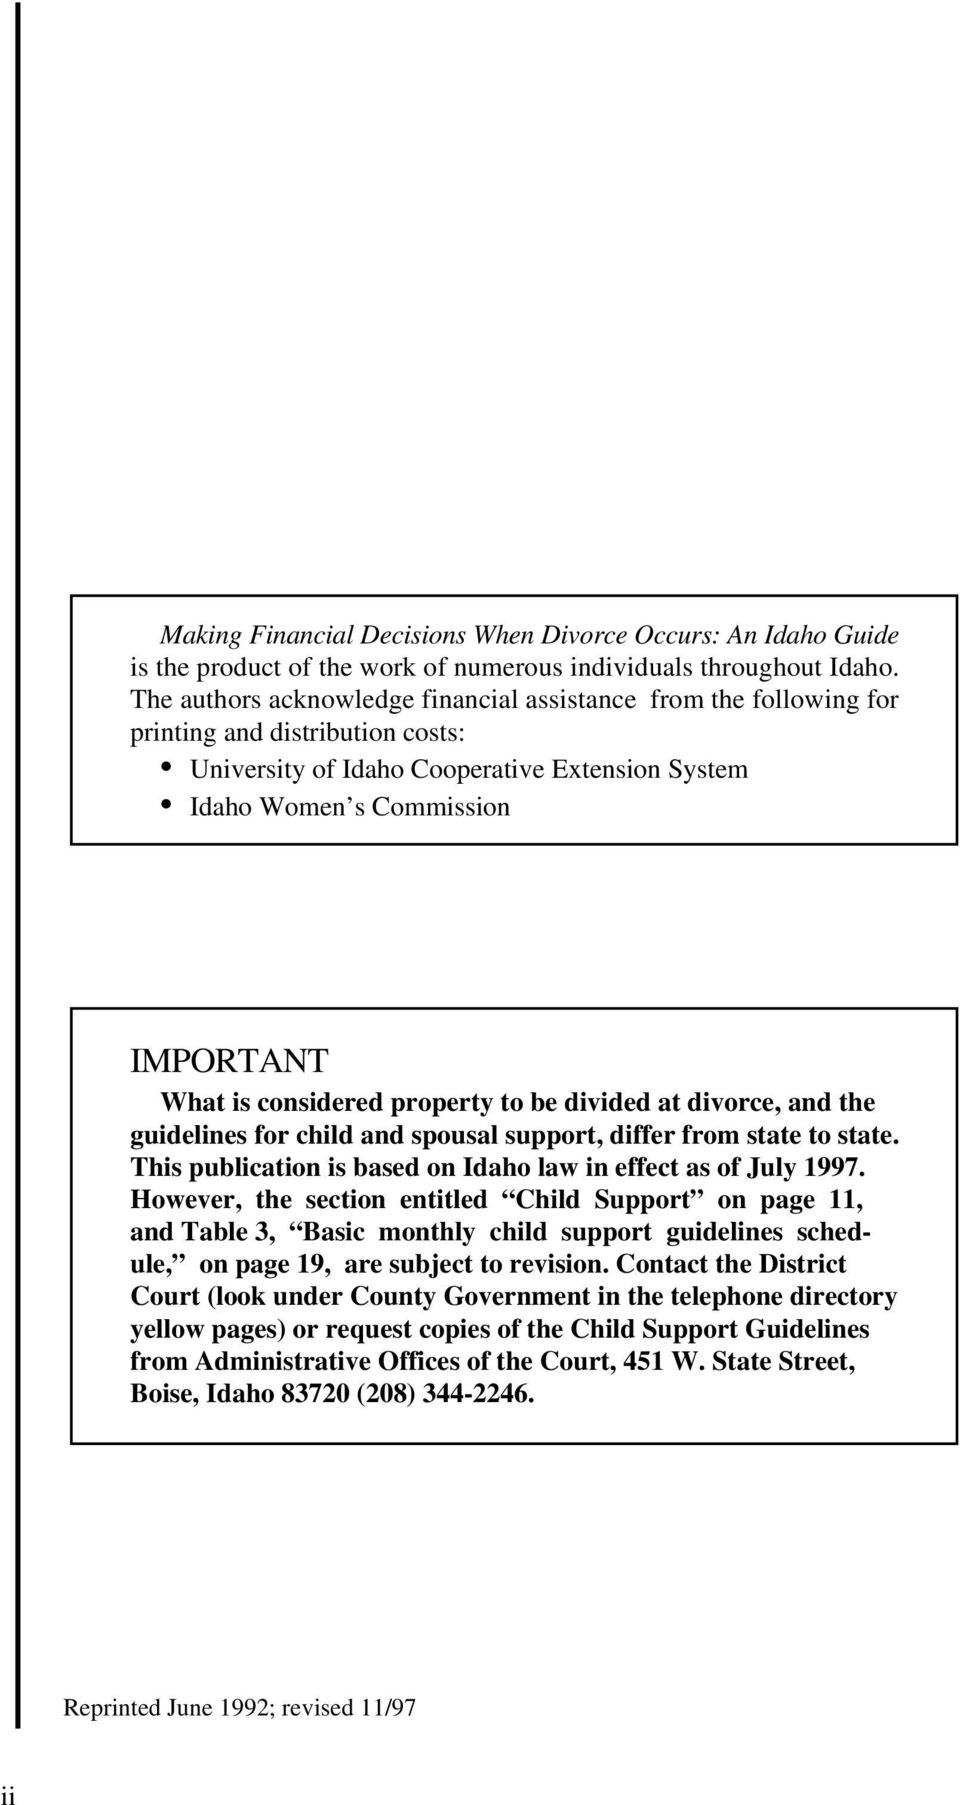 considered property to be divided at divorce, and the guidelines for child and spousal support, differ from state to state. This publication is based on Idaho law in effect as of July 1997.